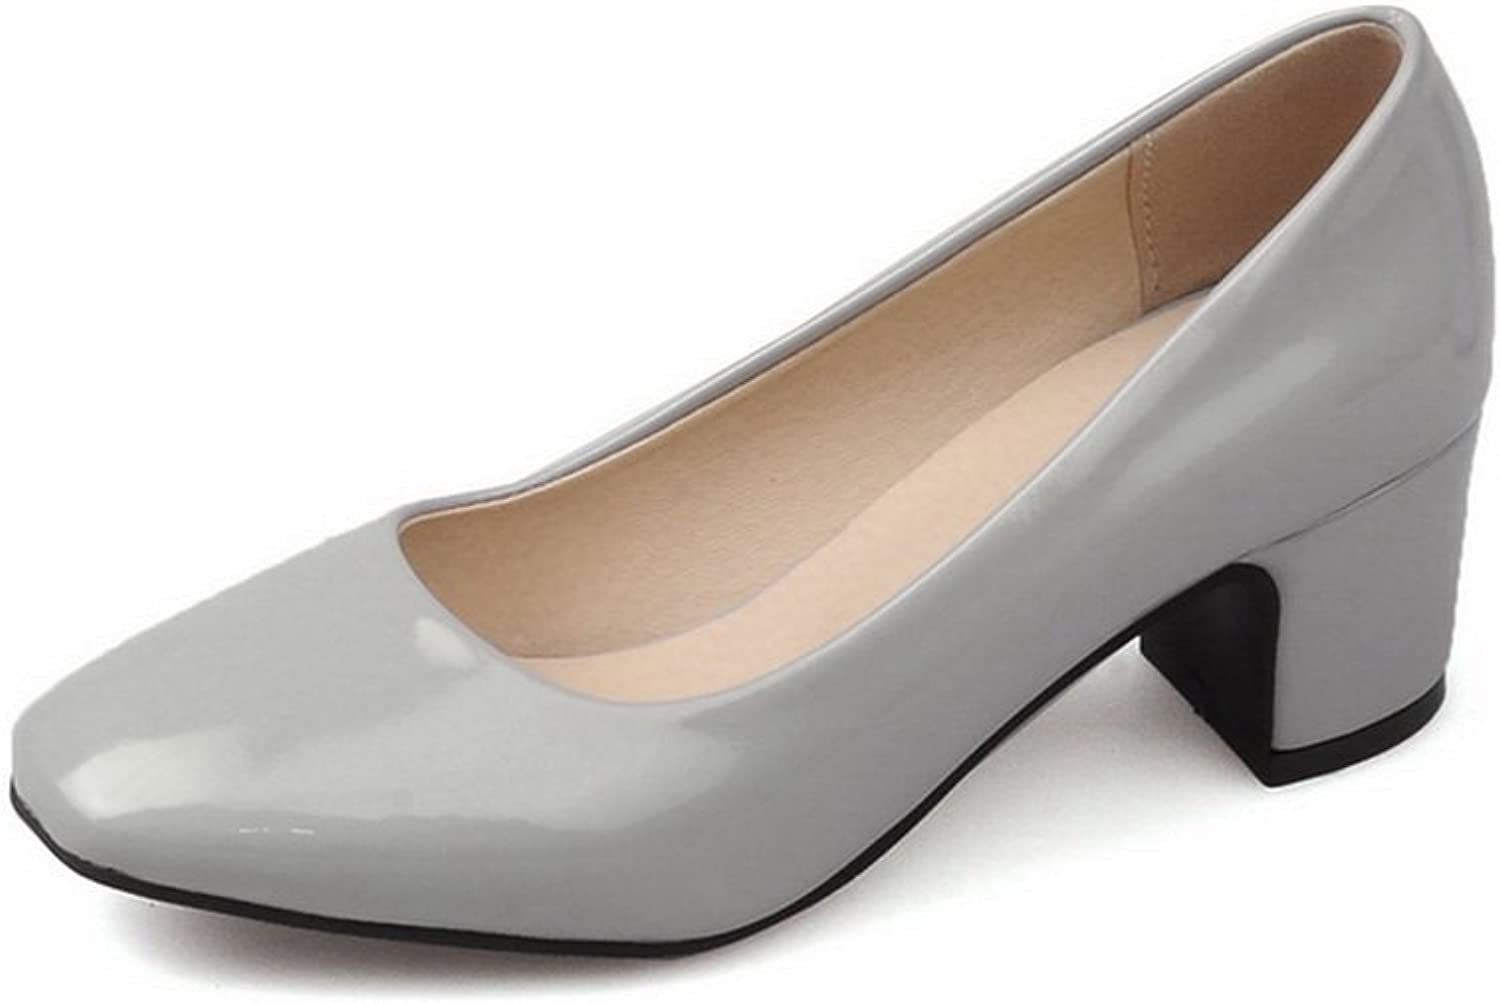 BalaMasa Ladies Square-Toe Chunky Heels Low-Cut Uppers Patent-Leather Pumps shoes